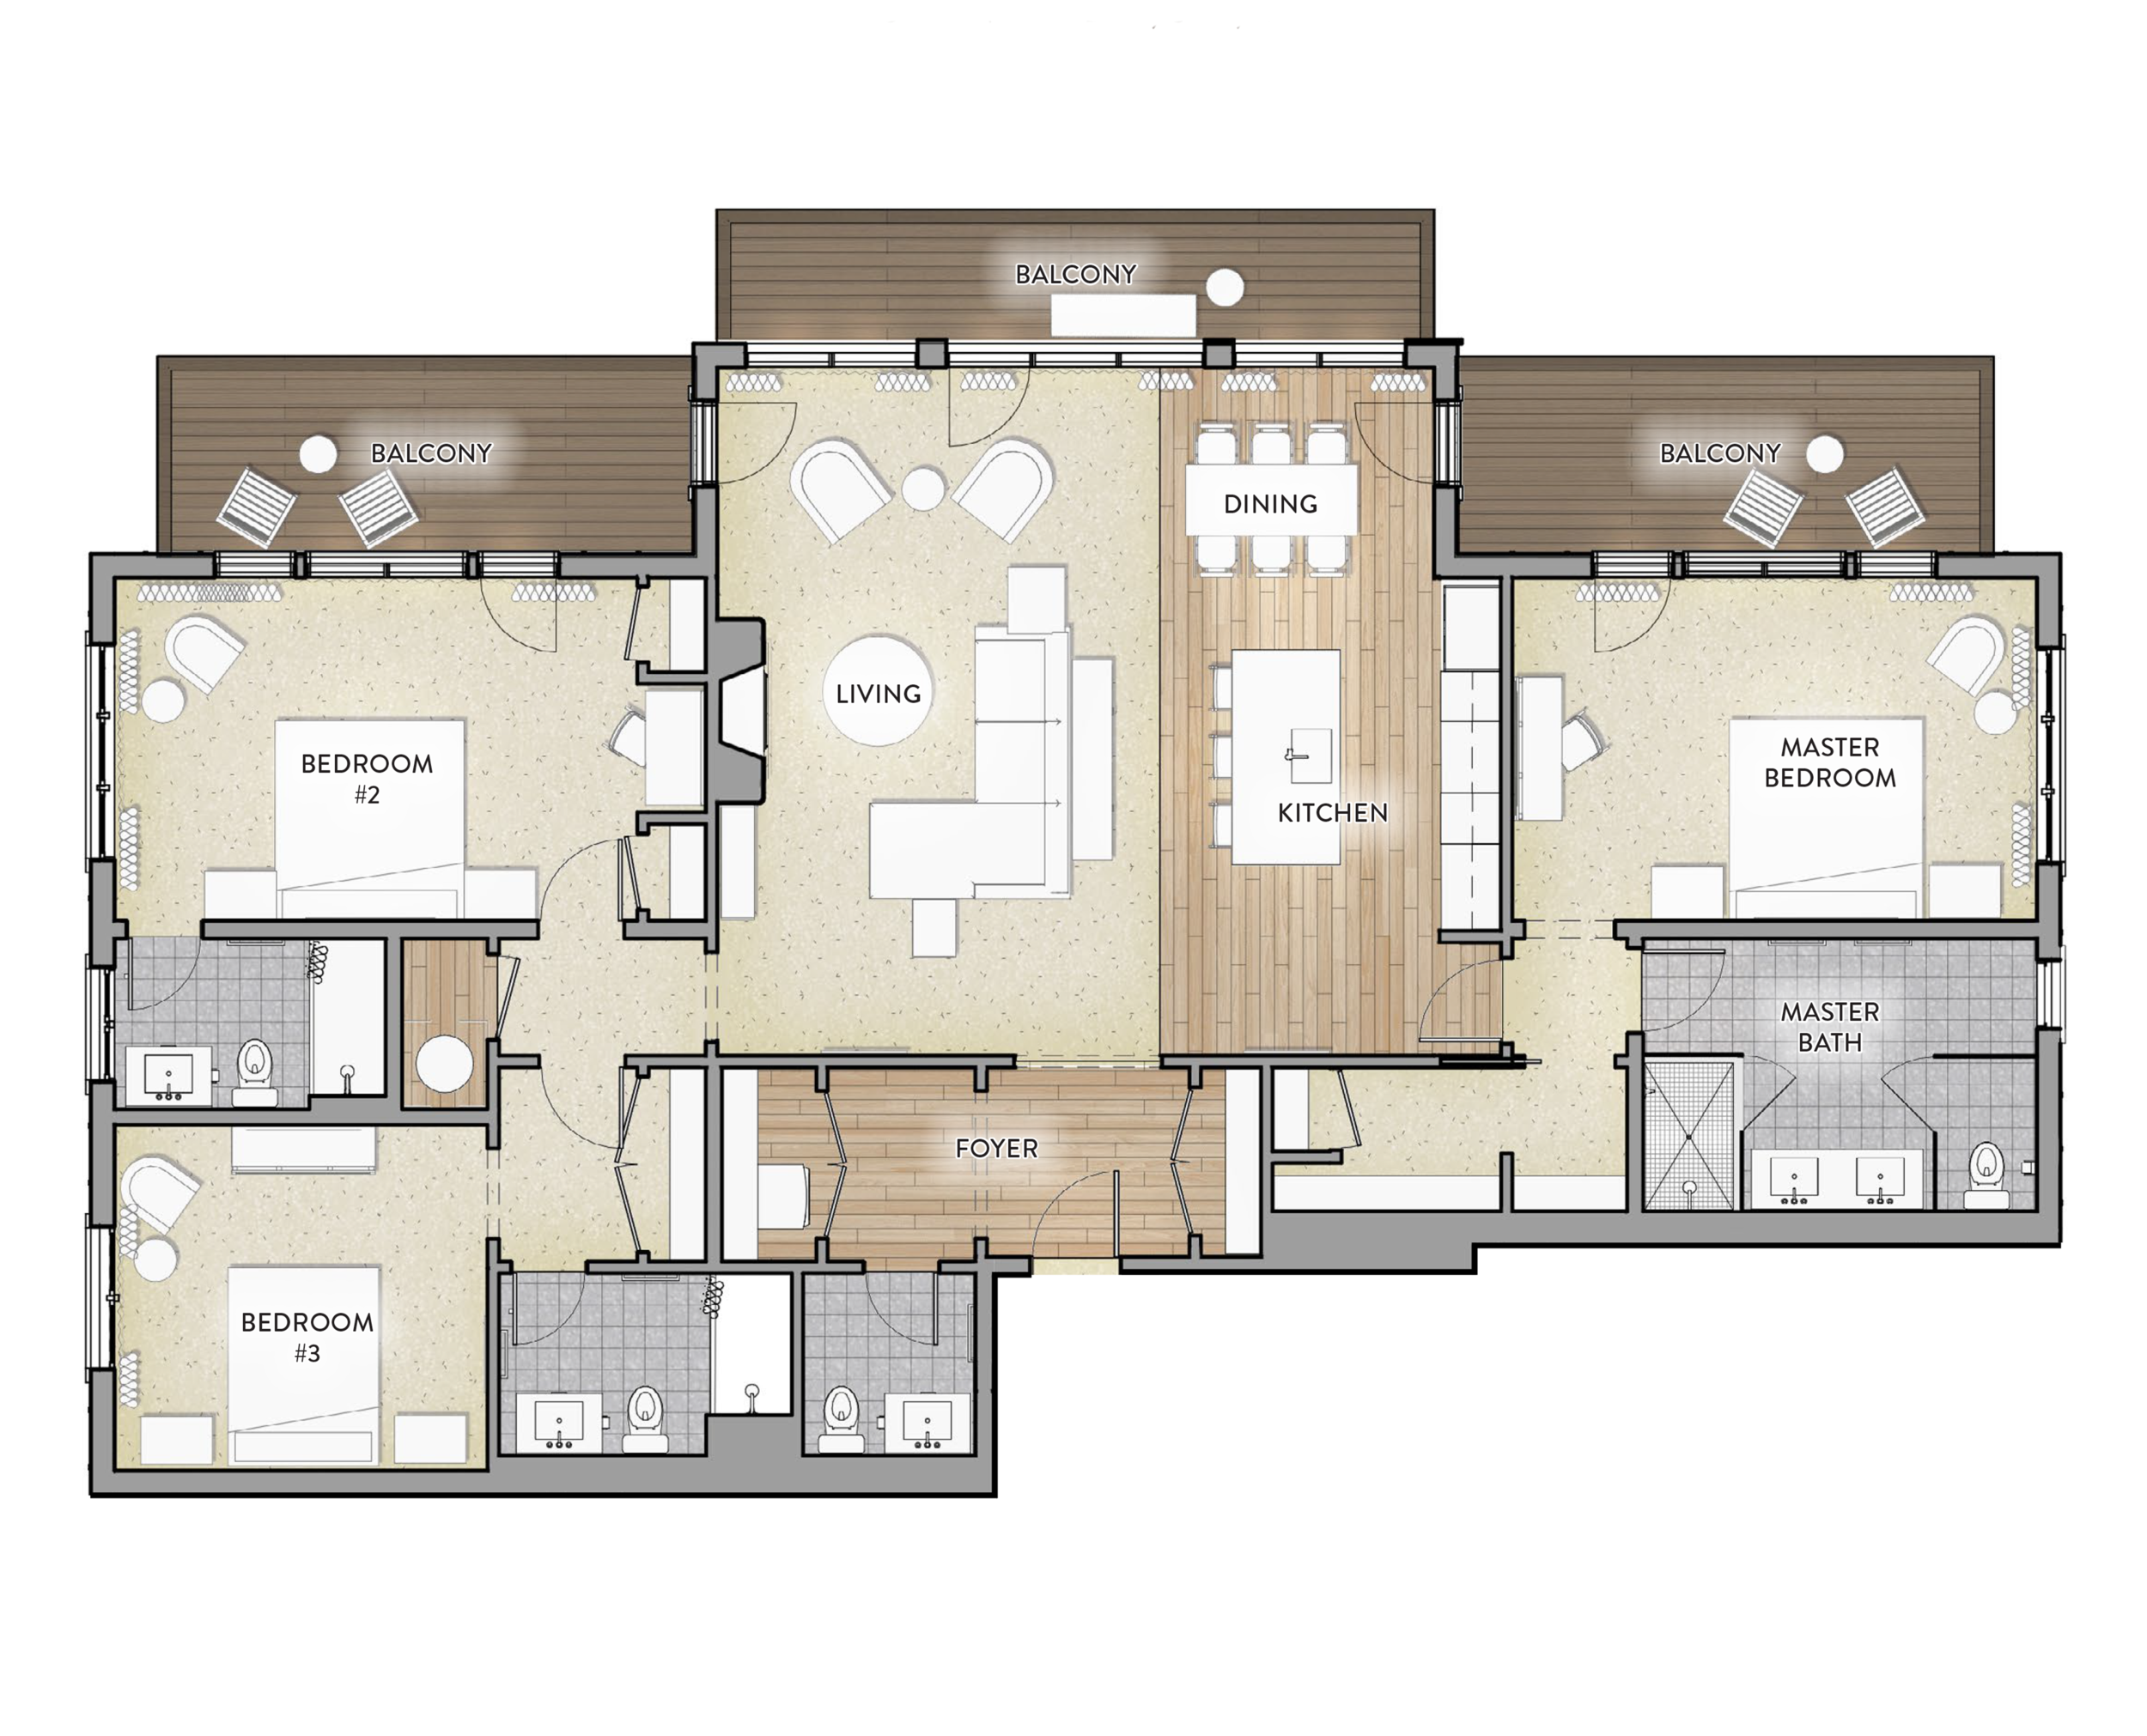 Type E - 3 bed / 3.5 BathArea: 1964 SF(Paint to Paint)Residences:240, 340, 4402 Balconies-